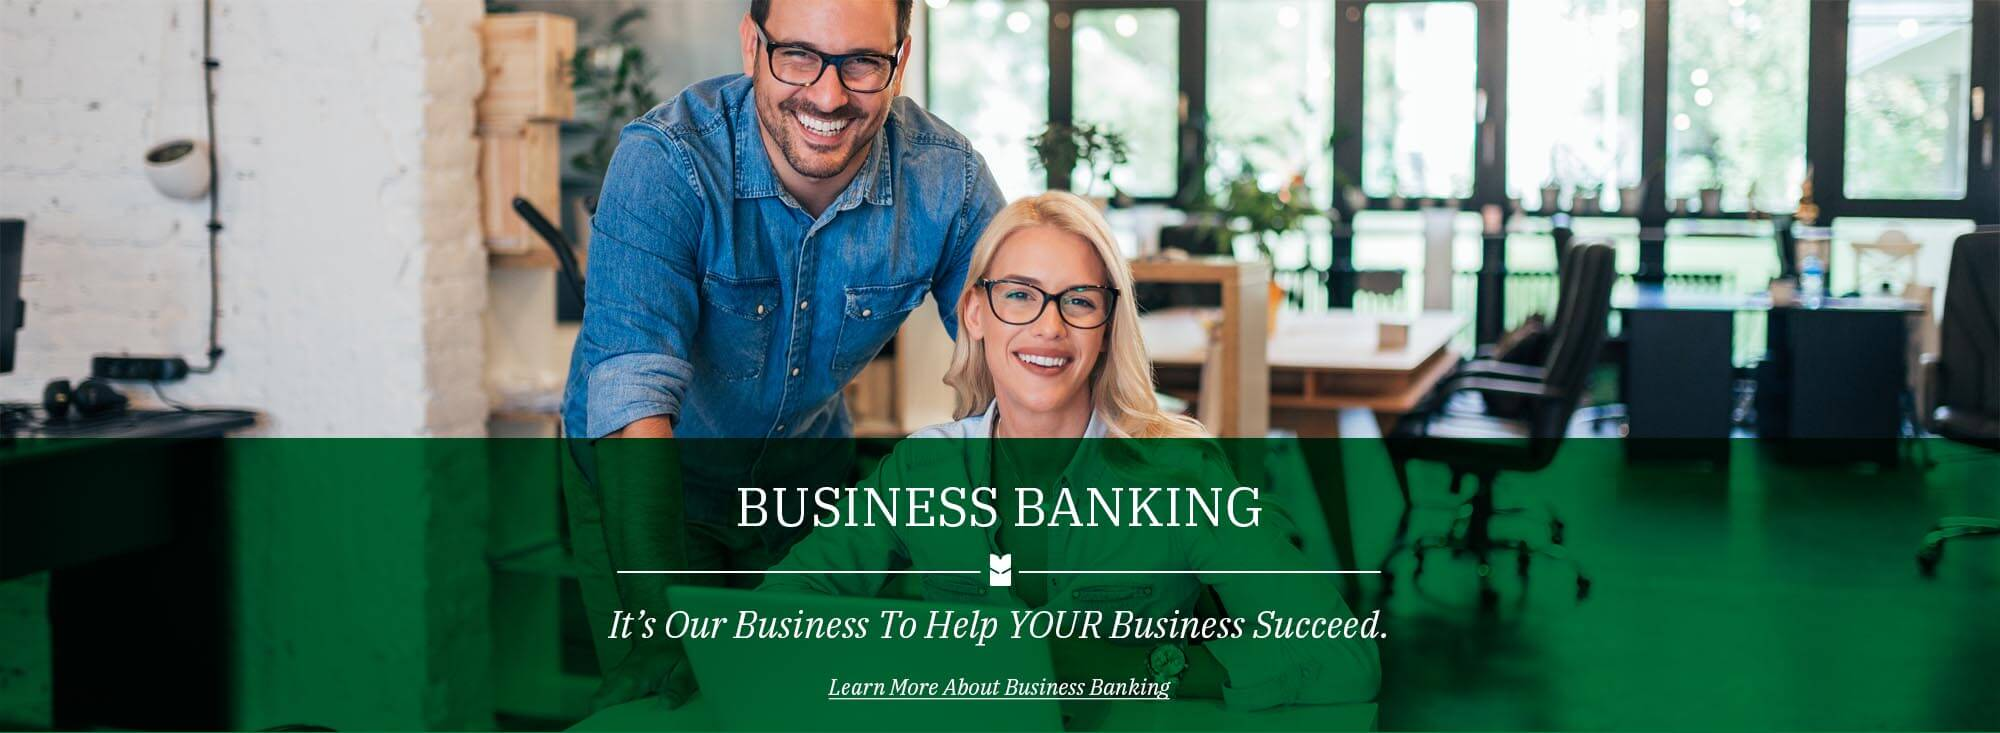 It's Our Business to help your business succeed. Learn more about business banking!